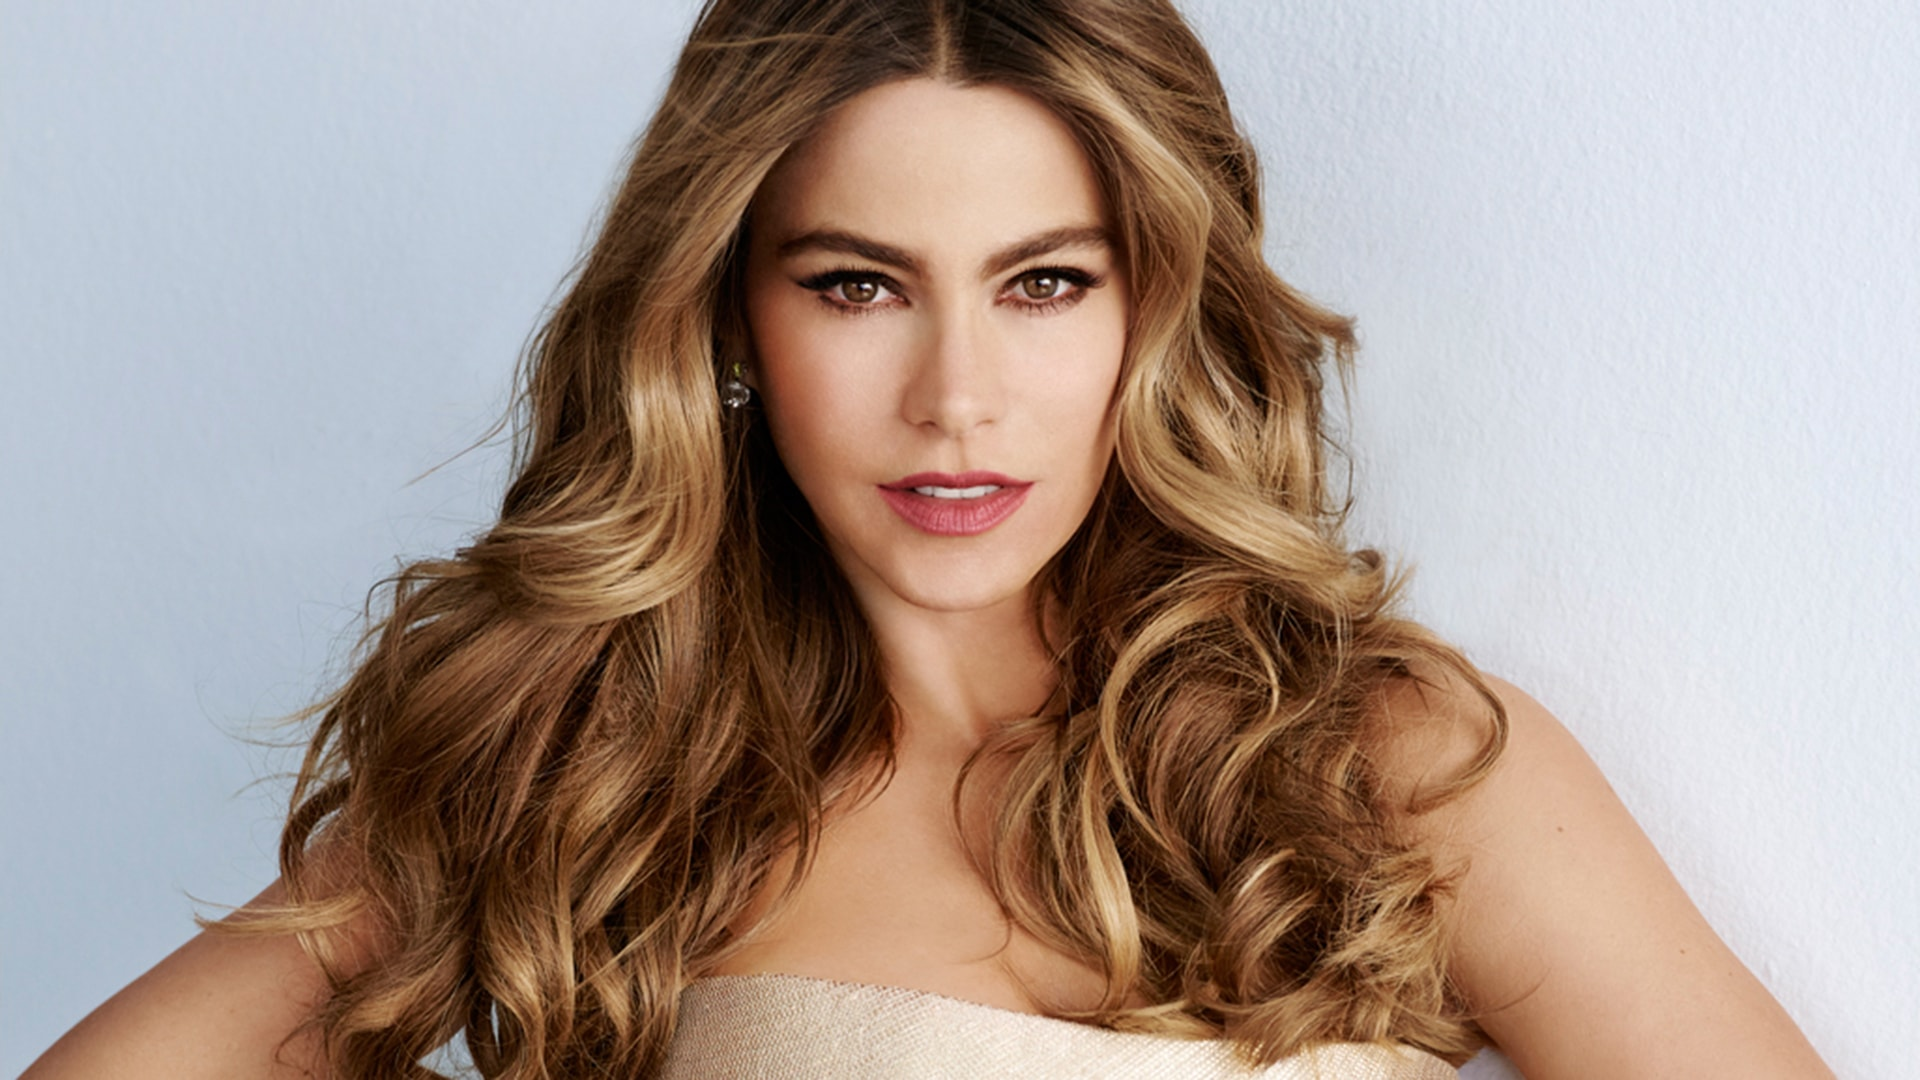 Sofia Vergara Widescreen for desktop